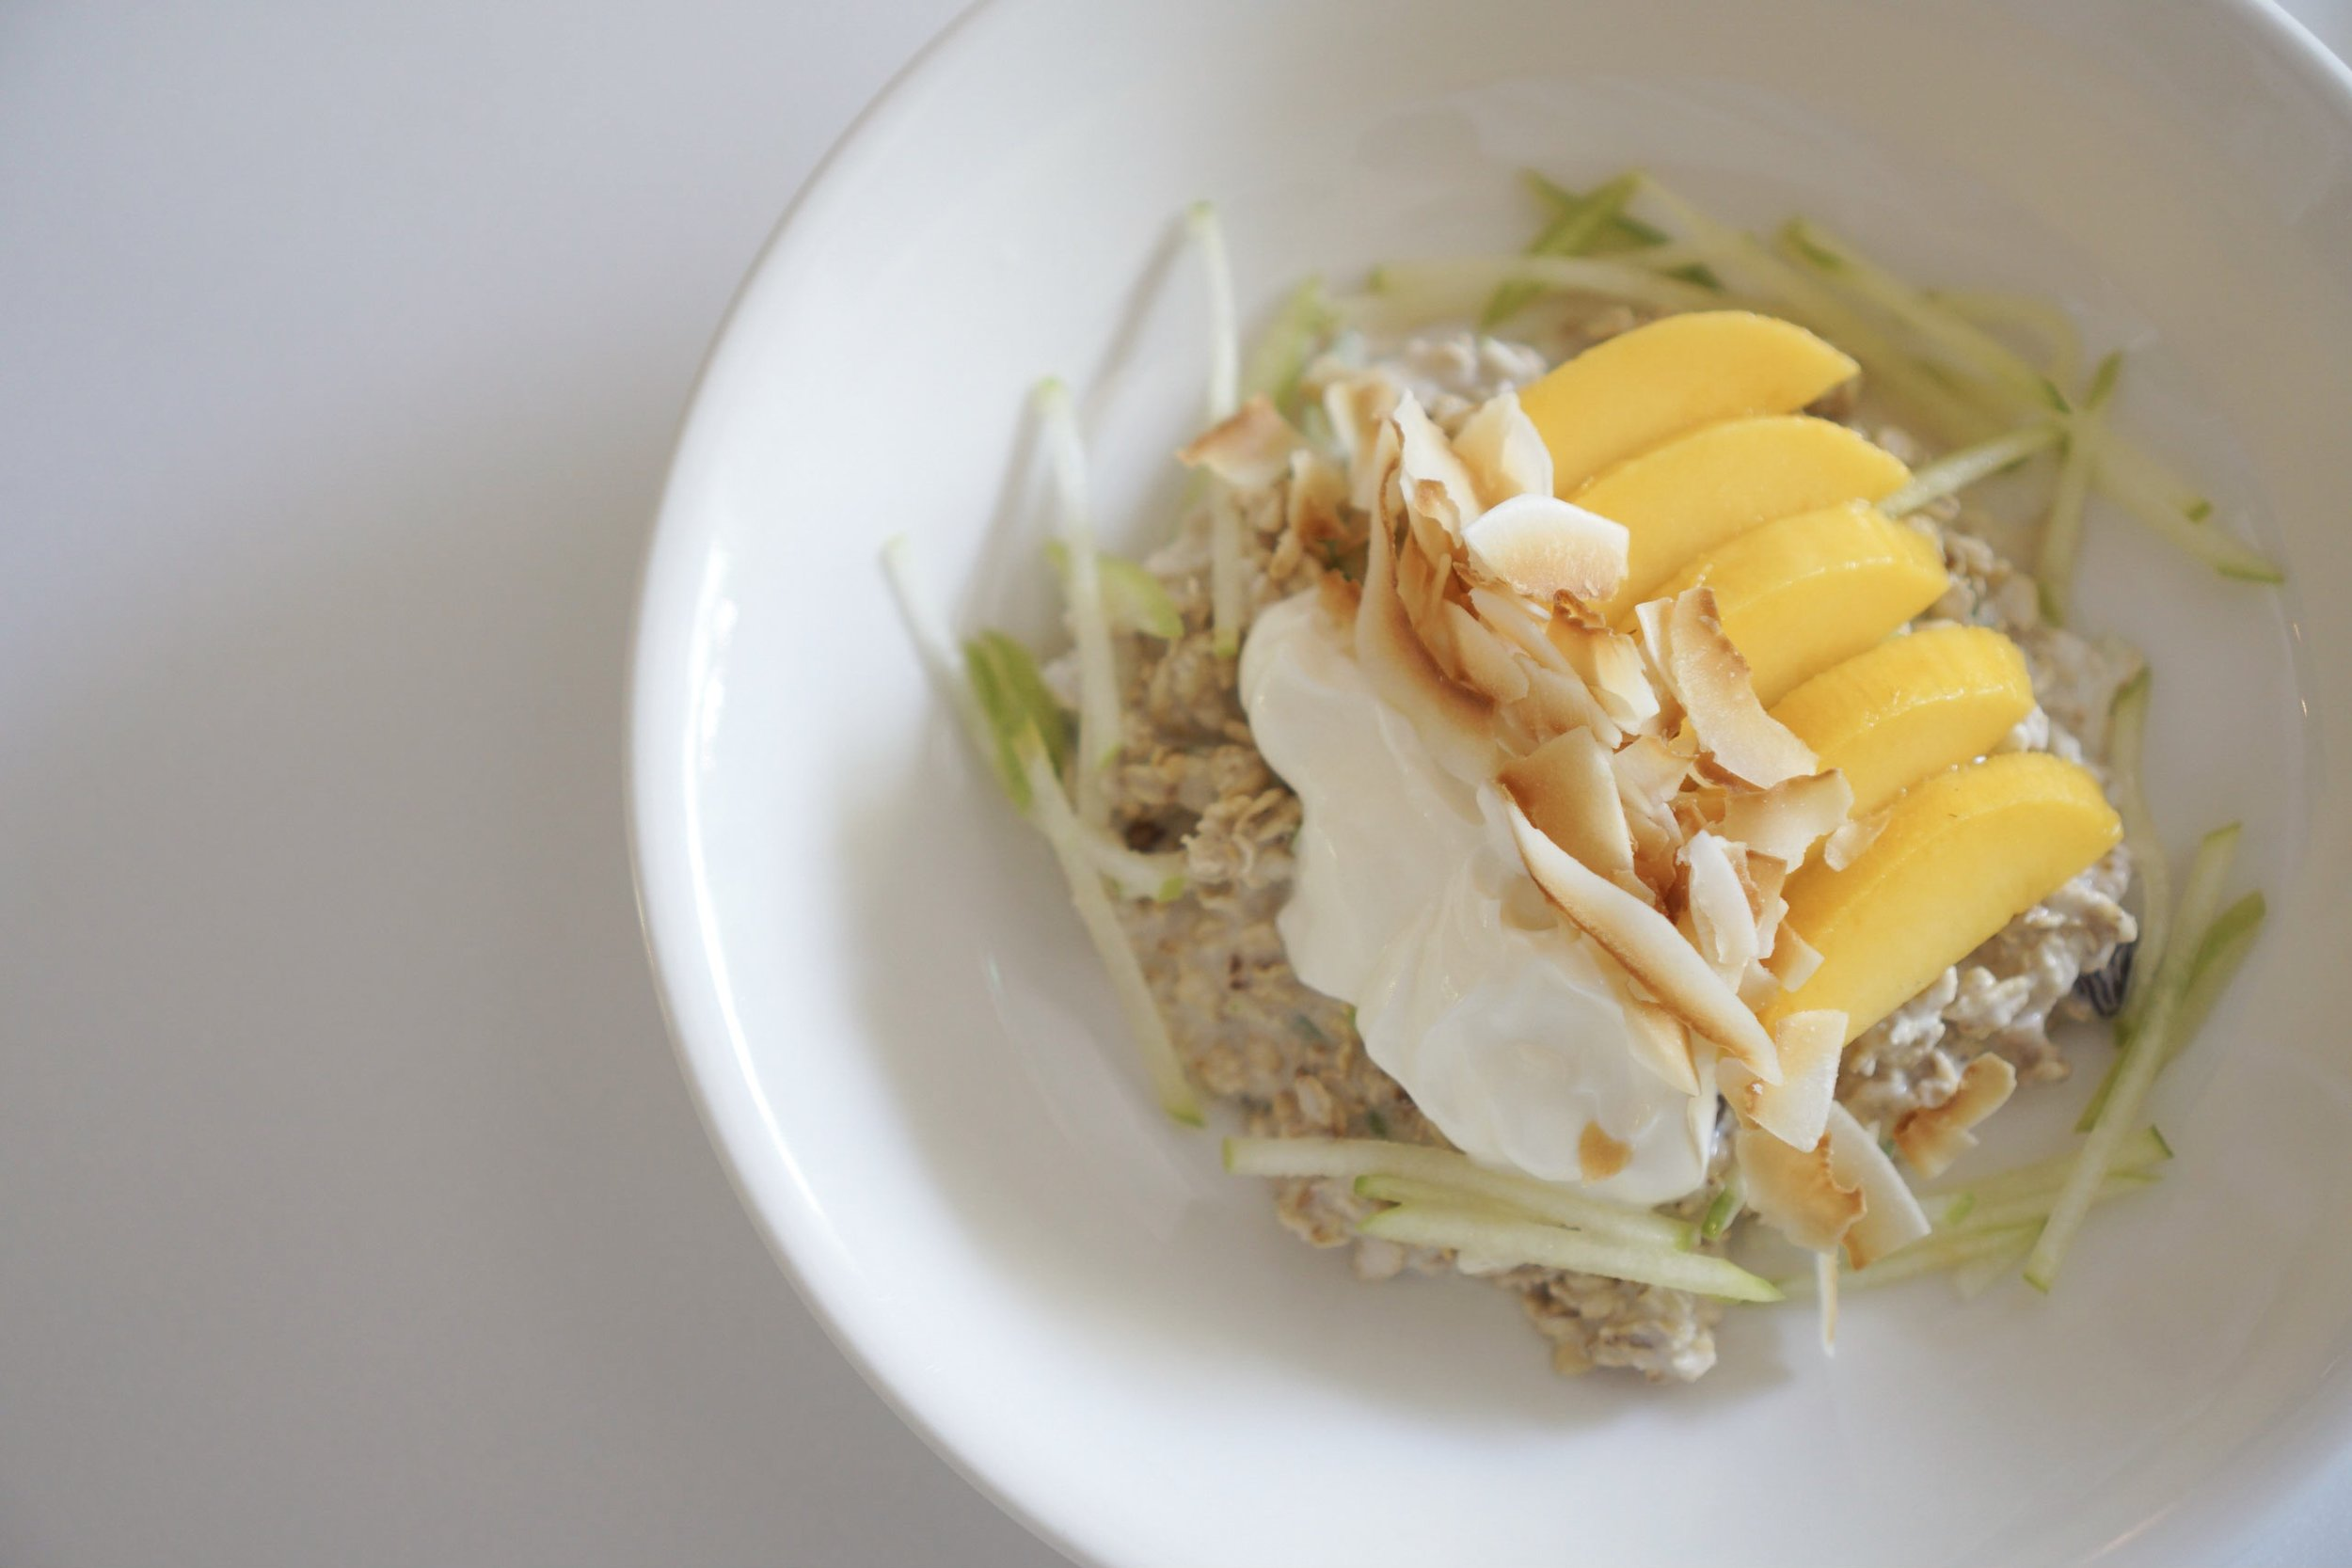 PUNCH_Food_Bircher Muesli_2.jpg